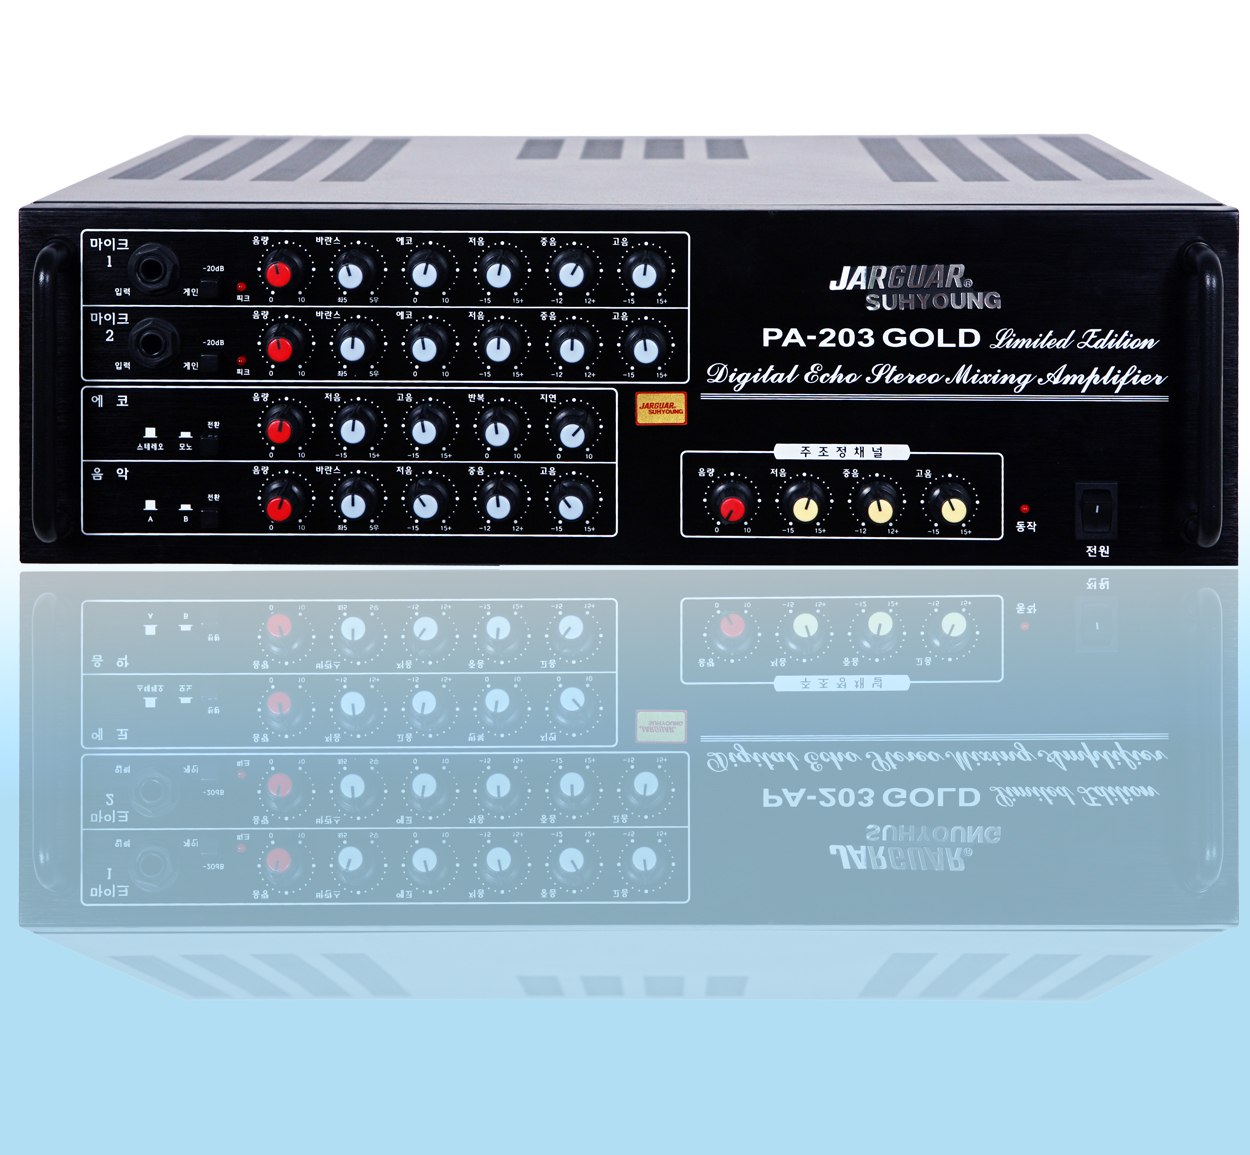 AMPLY JARGUAR SUHYOUNG PA-203 GOLD LIMITED EDITION